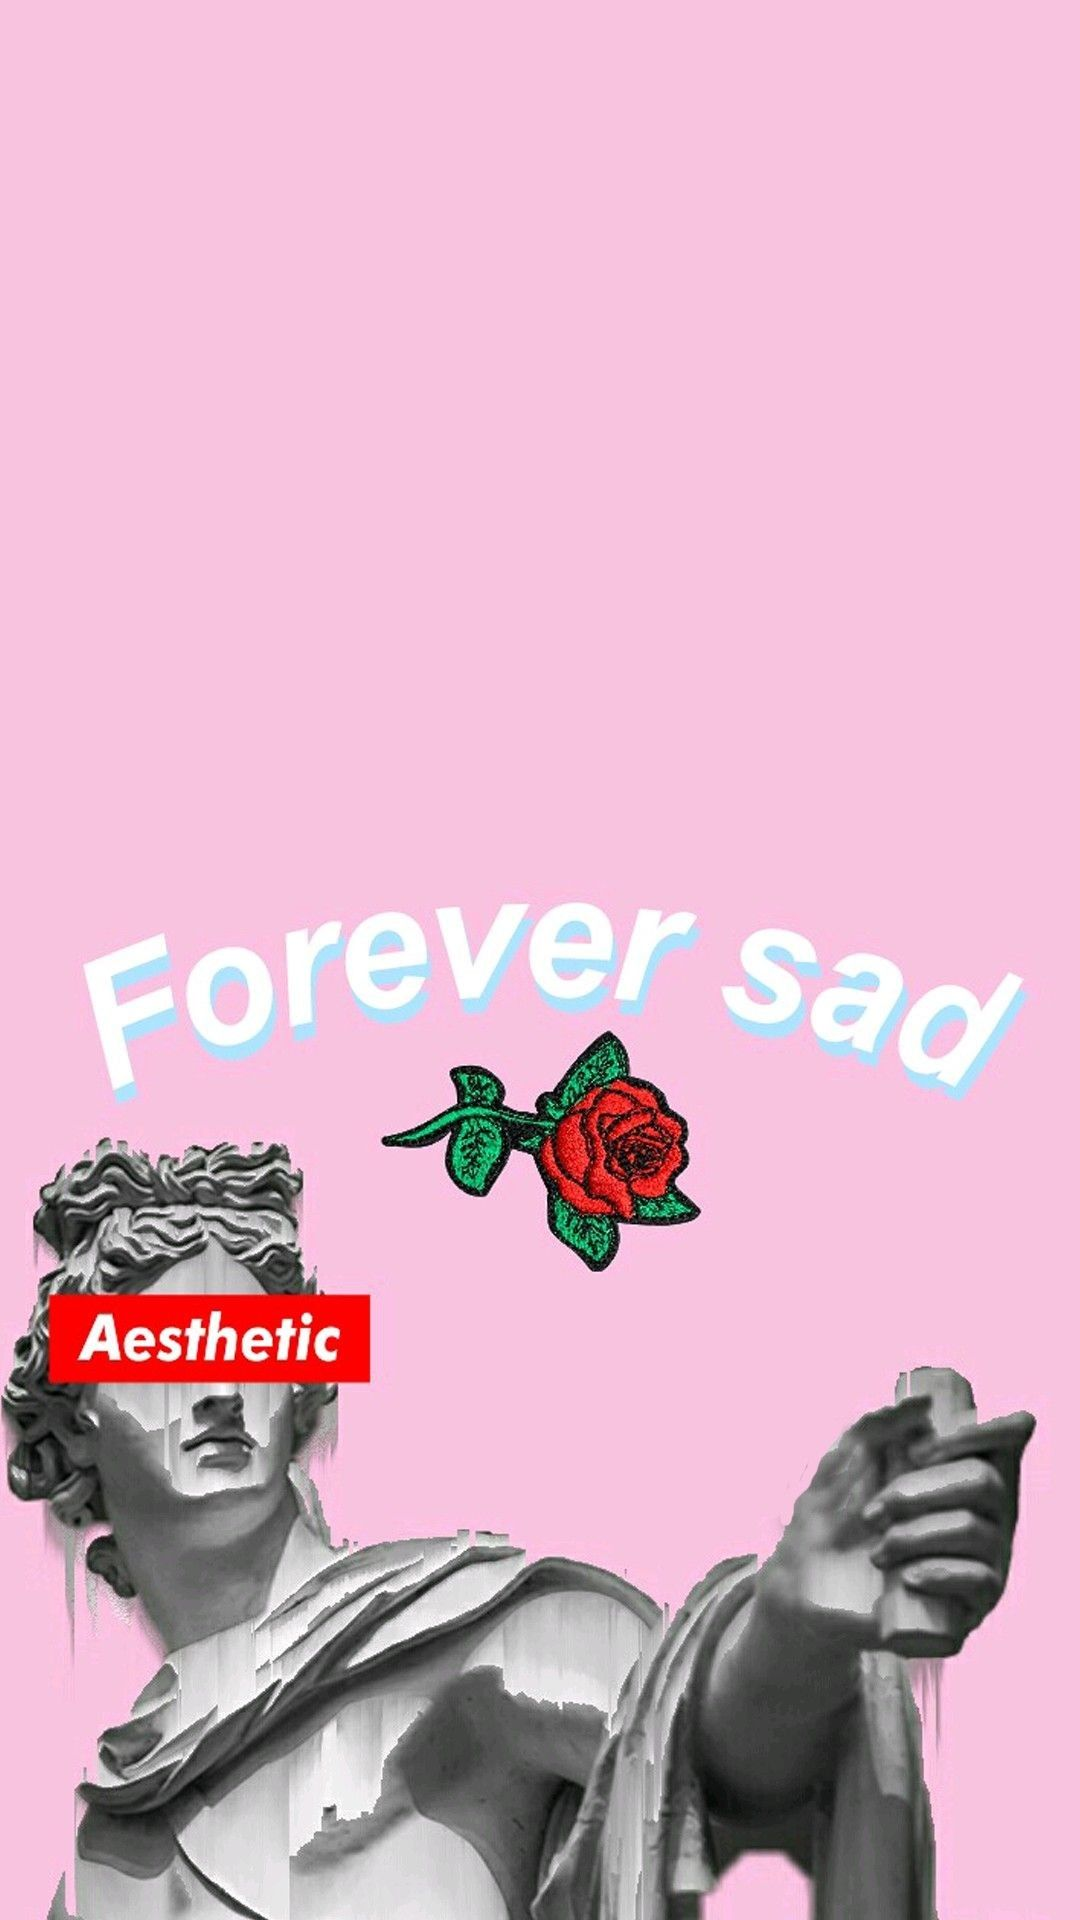 bRwbx tumblr aesthetic wallpaper forever sad